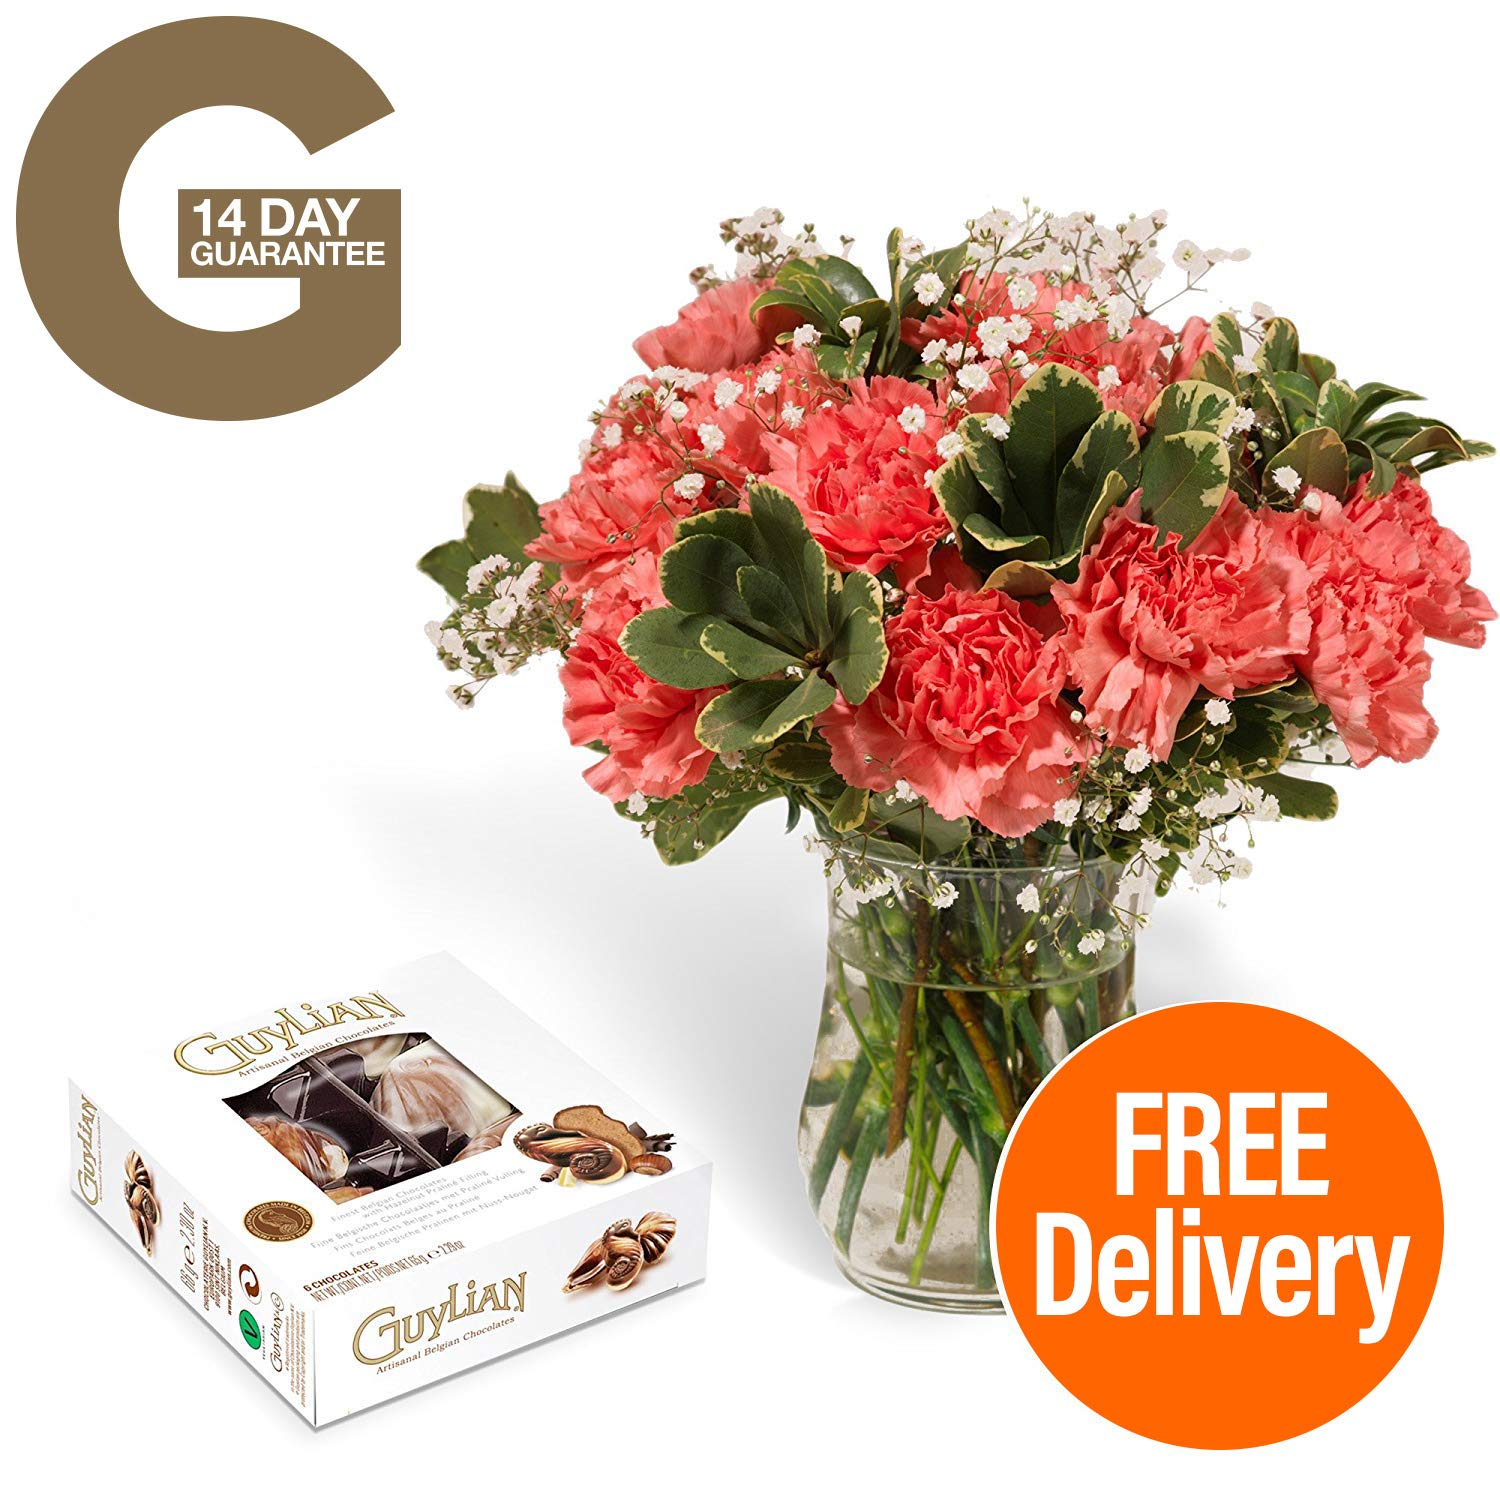 Fresh Flowers Delivered - Delivery Included - 18 Pink Carnations Bouquet with Chocolates, Flower Food and BONUS Ebook Guide - Perfect for birthdays, anniversaries and thank you gifts Guernsey Flowers